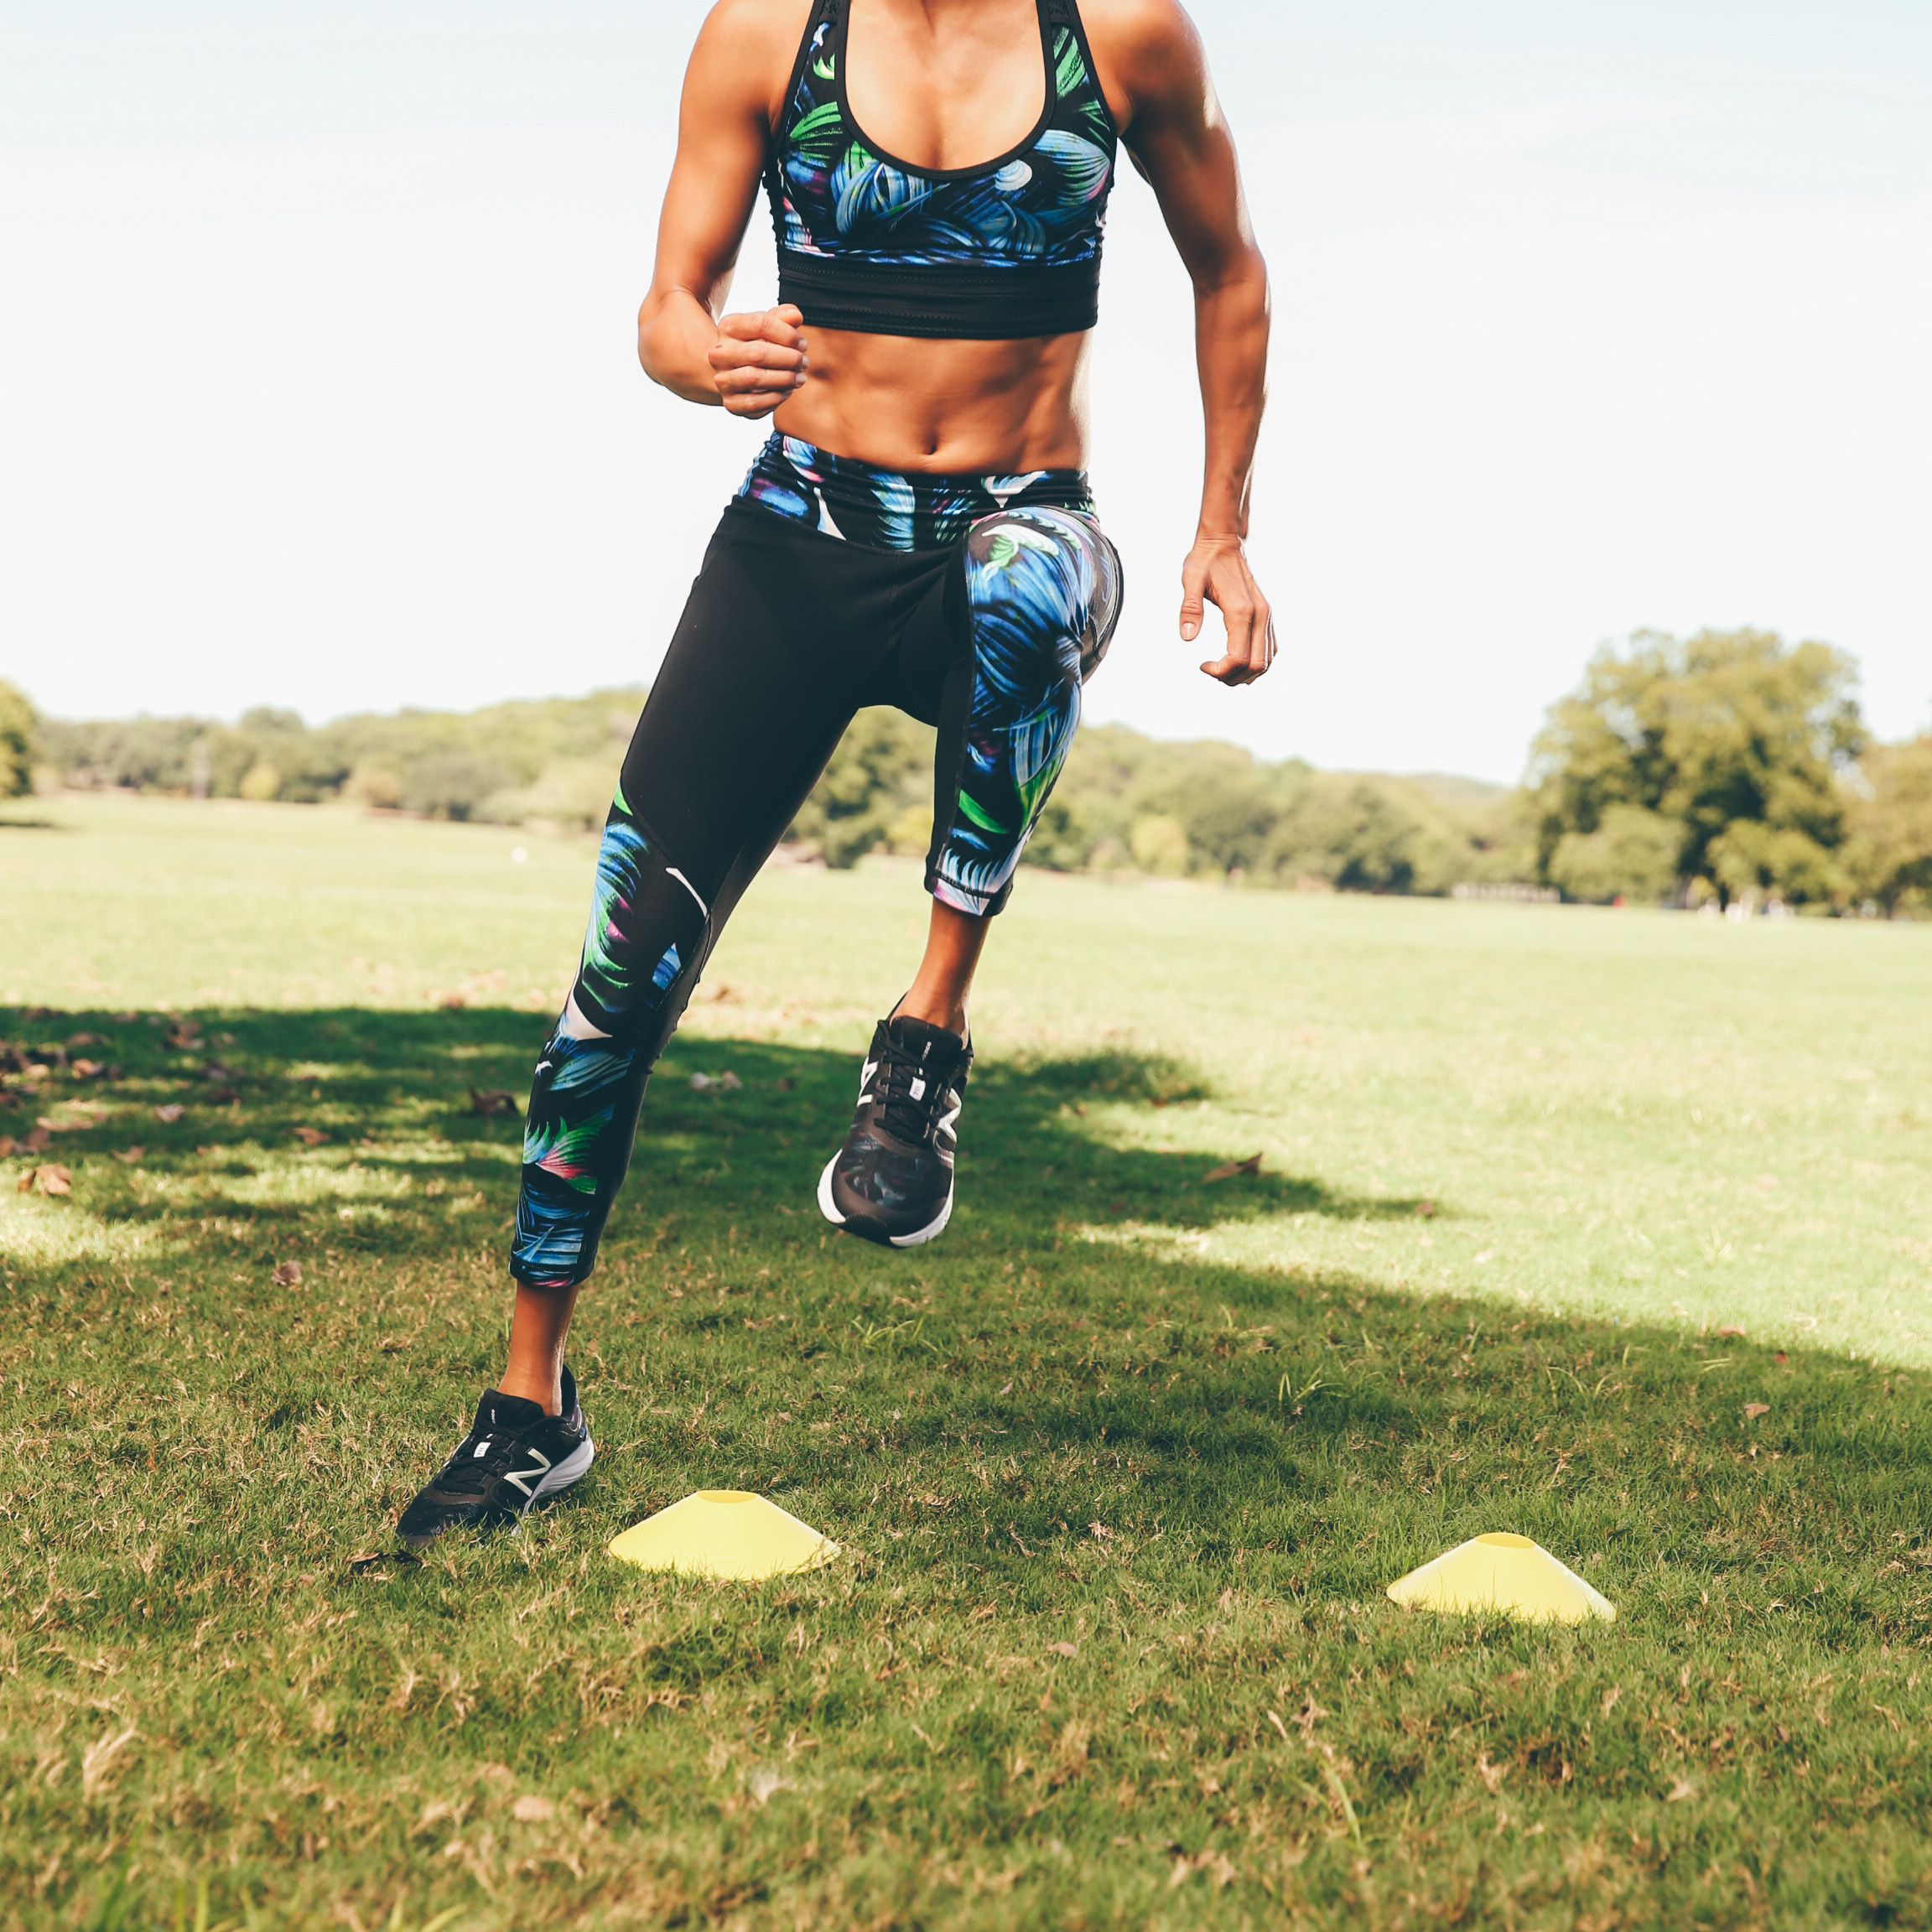 Need a new outfit for your fitness goals? Check out the array of outfits that will complement your work out regimen. Tights, sports bra, sneakers- All of the latest styles for you.